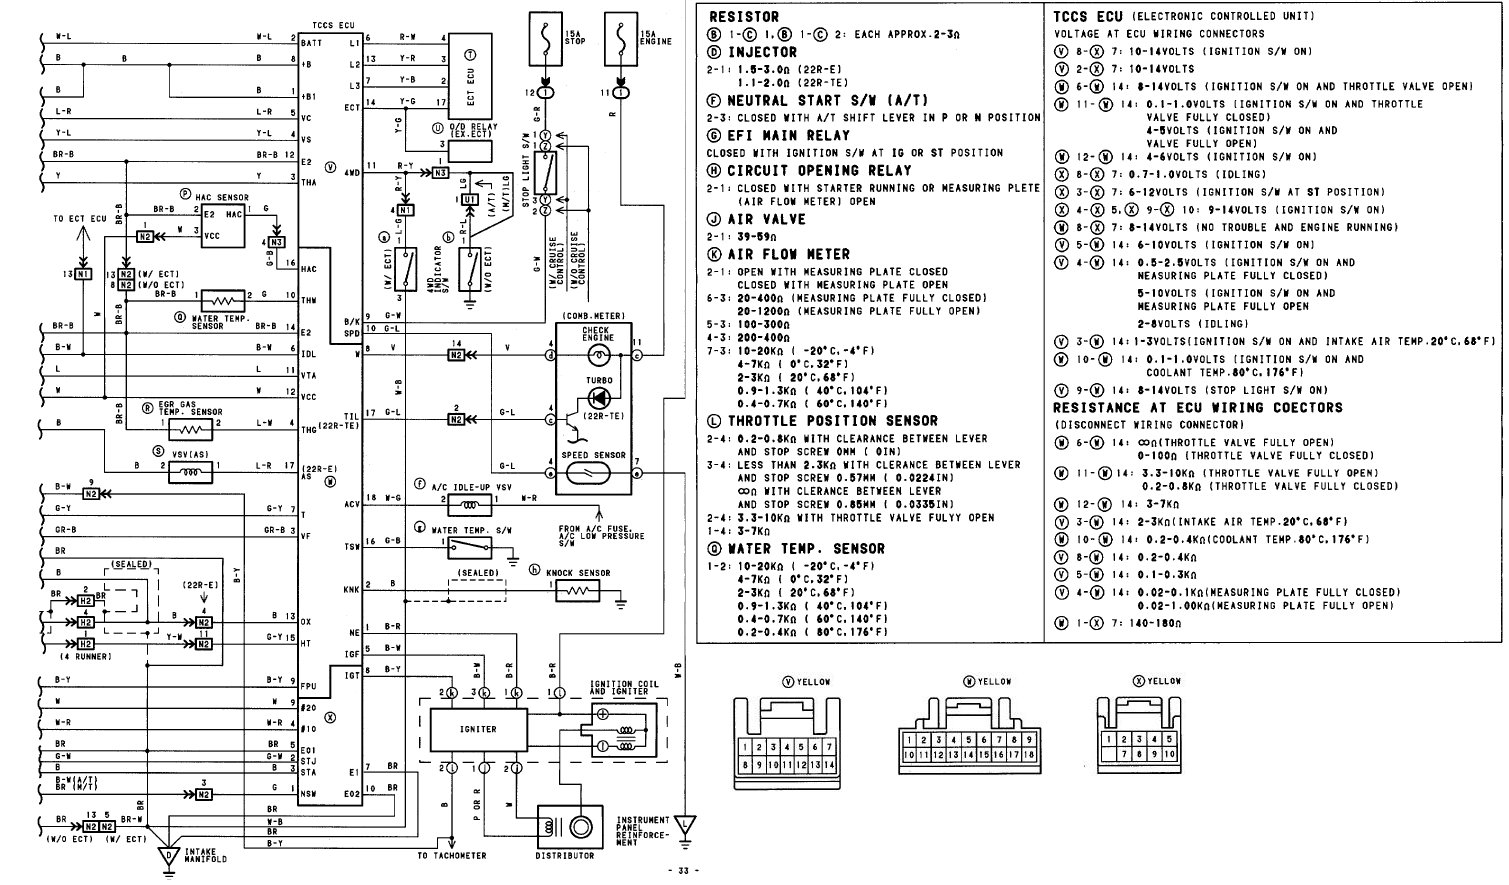 toyota 4runner wiring diagram jHkLHrj 2000 4runner wiring diagram 2005 4runner wiring diagram \u2022 wiring 1990 toyota pickup charging wiring schematic at eliteediting.co